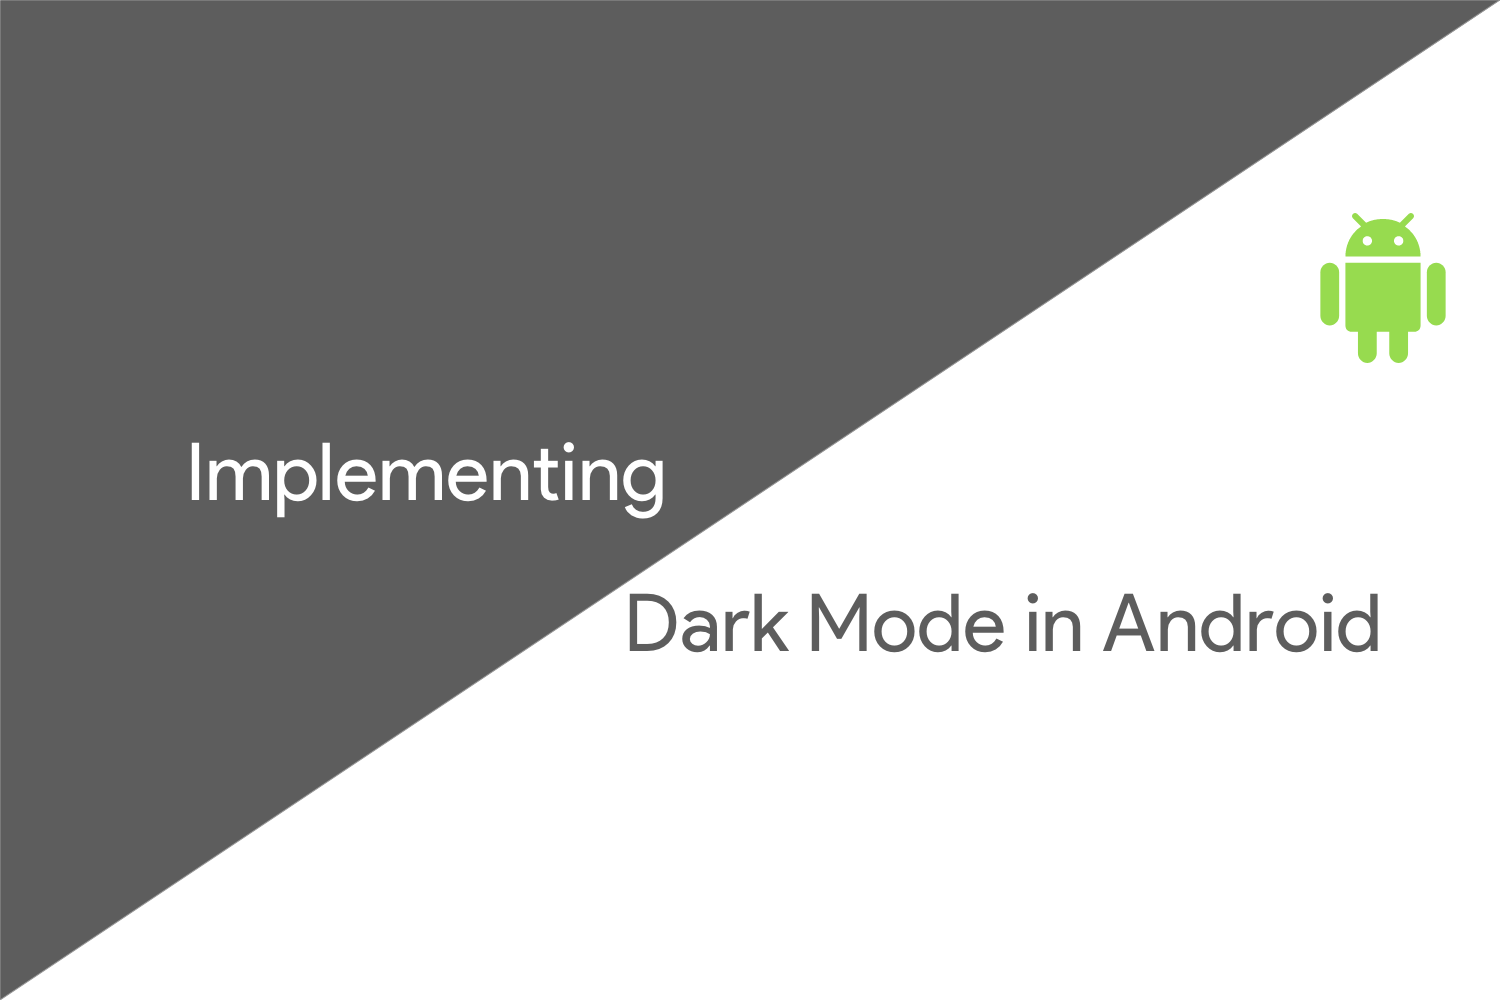 Implementing Dark Mode Theme in Android